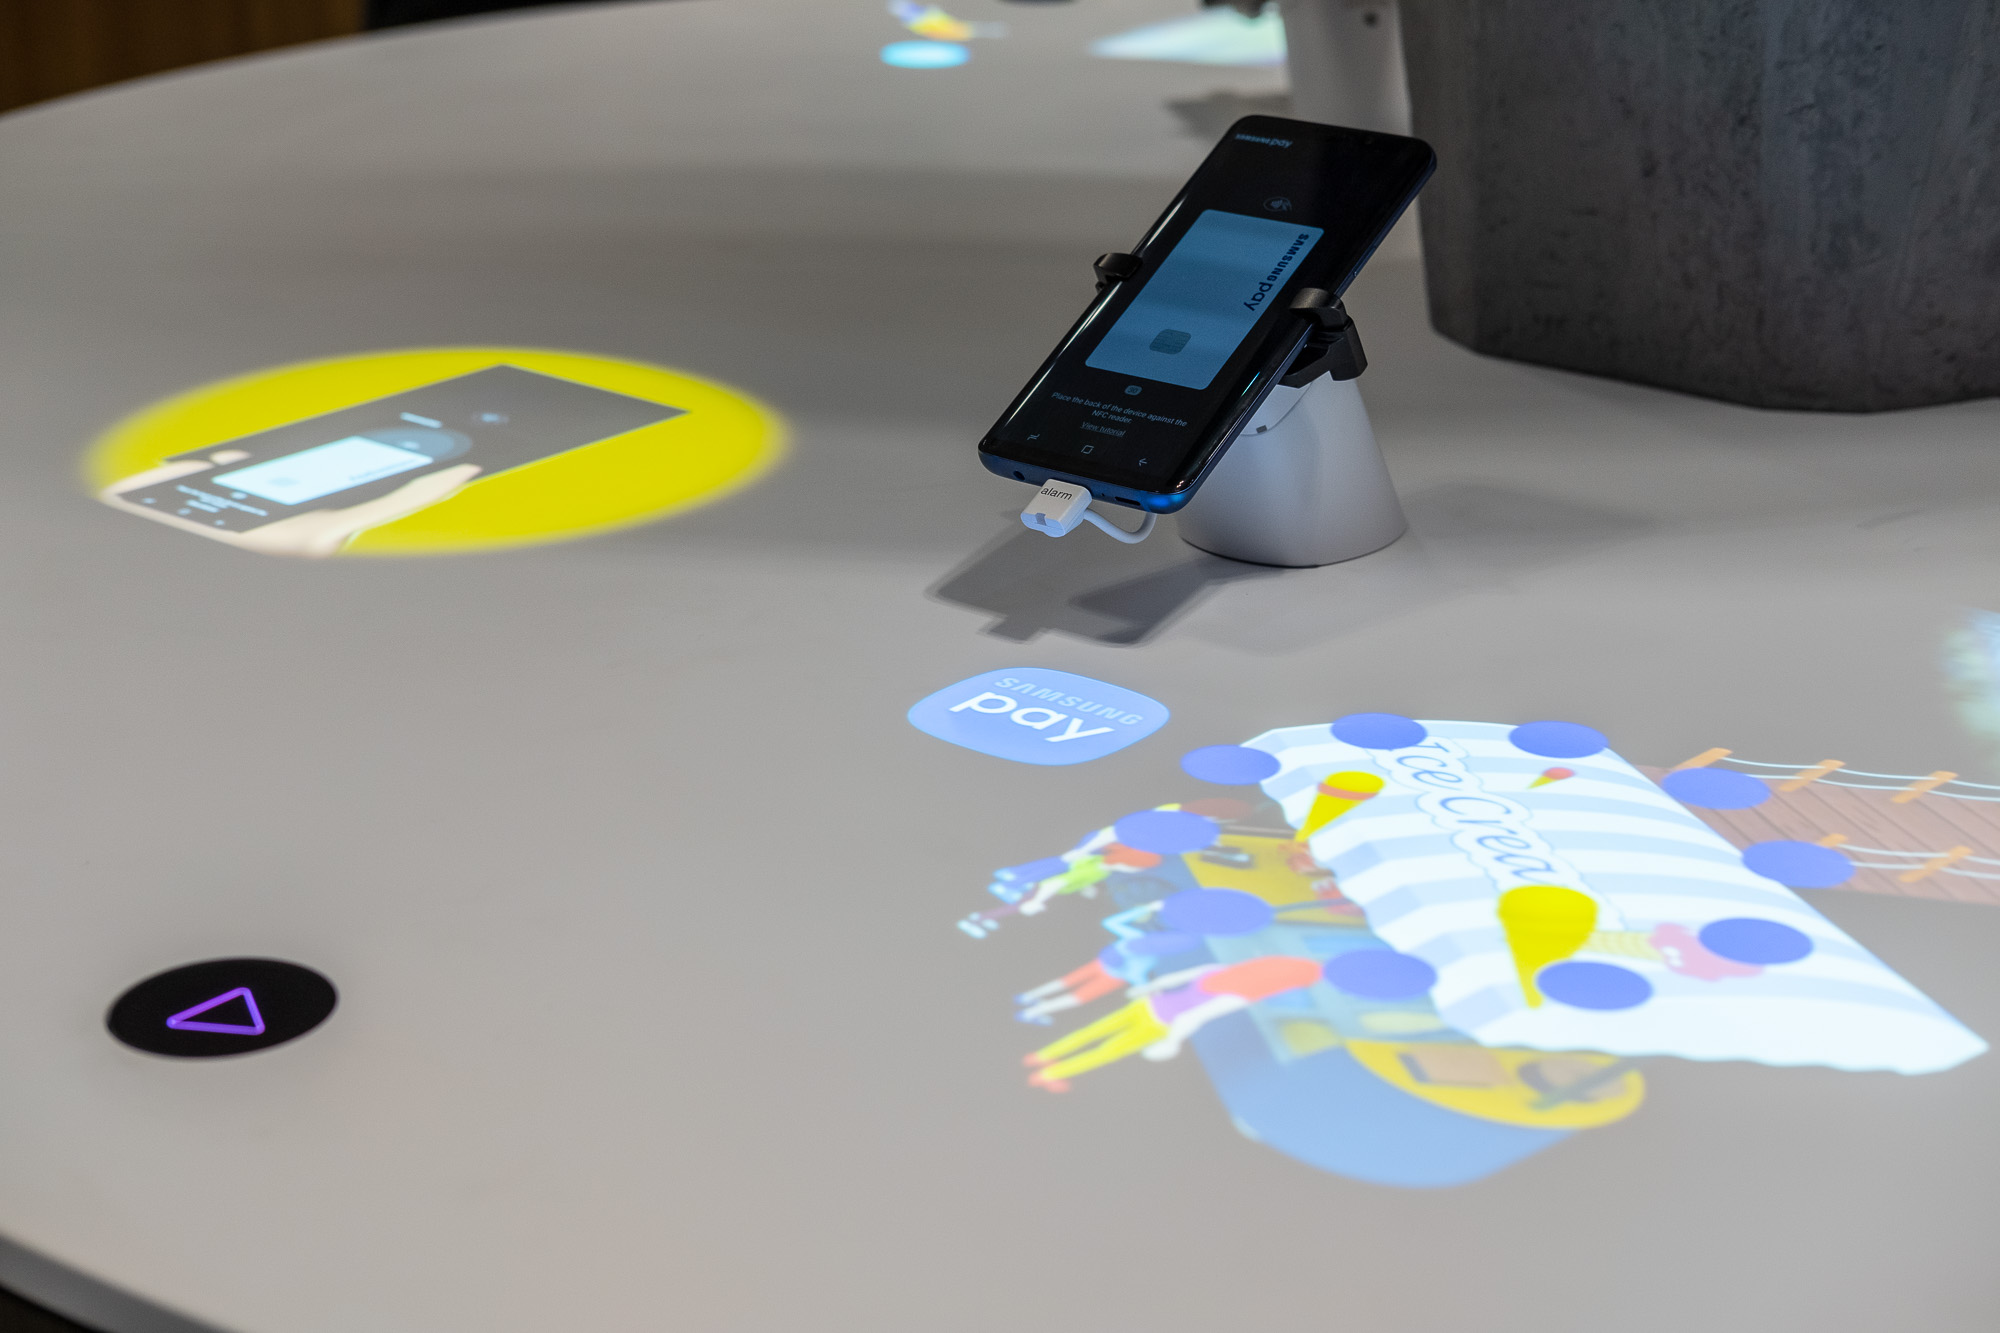 Event Projection: Bespoke Interactive Retail Display for Samsung